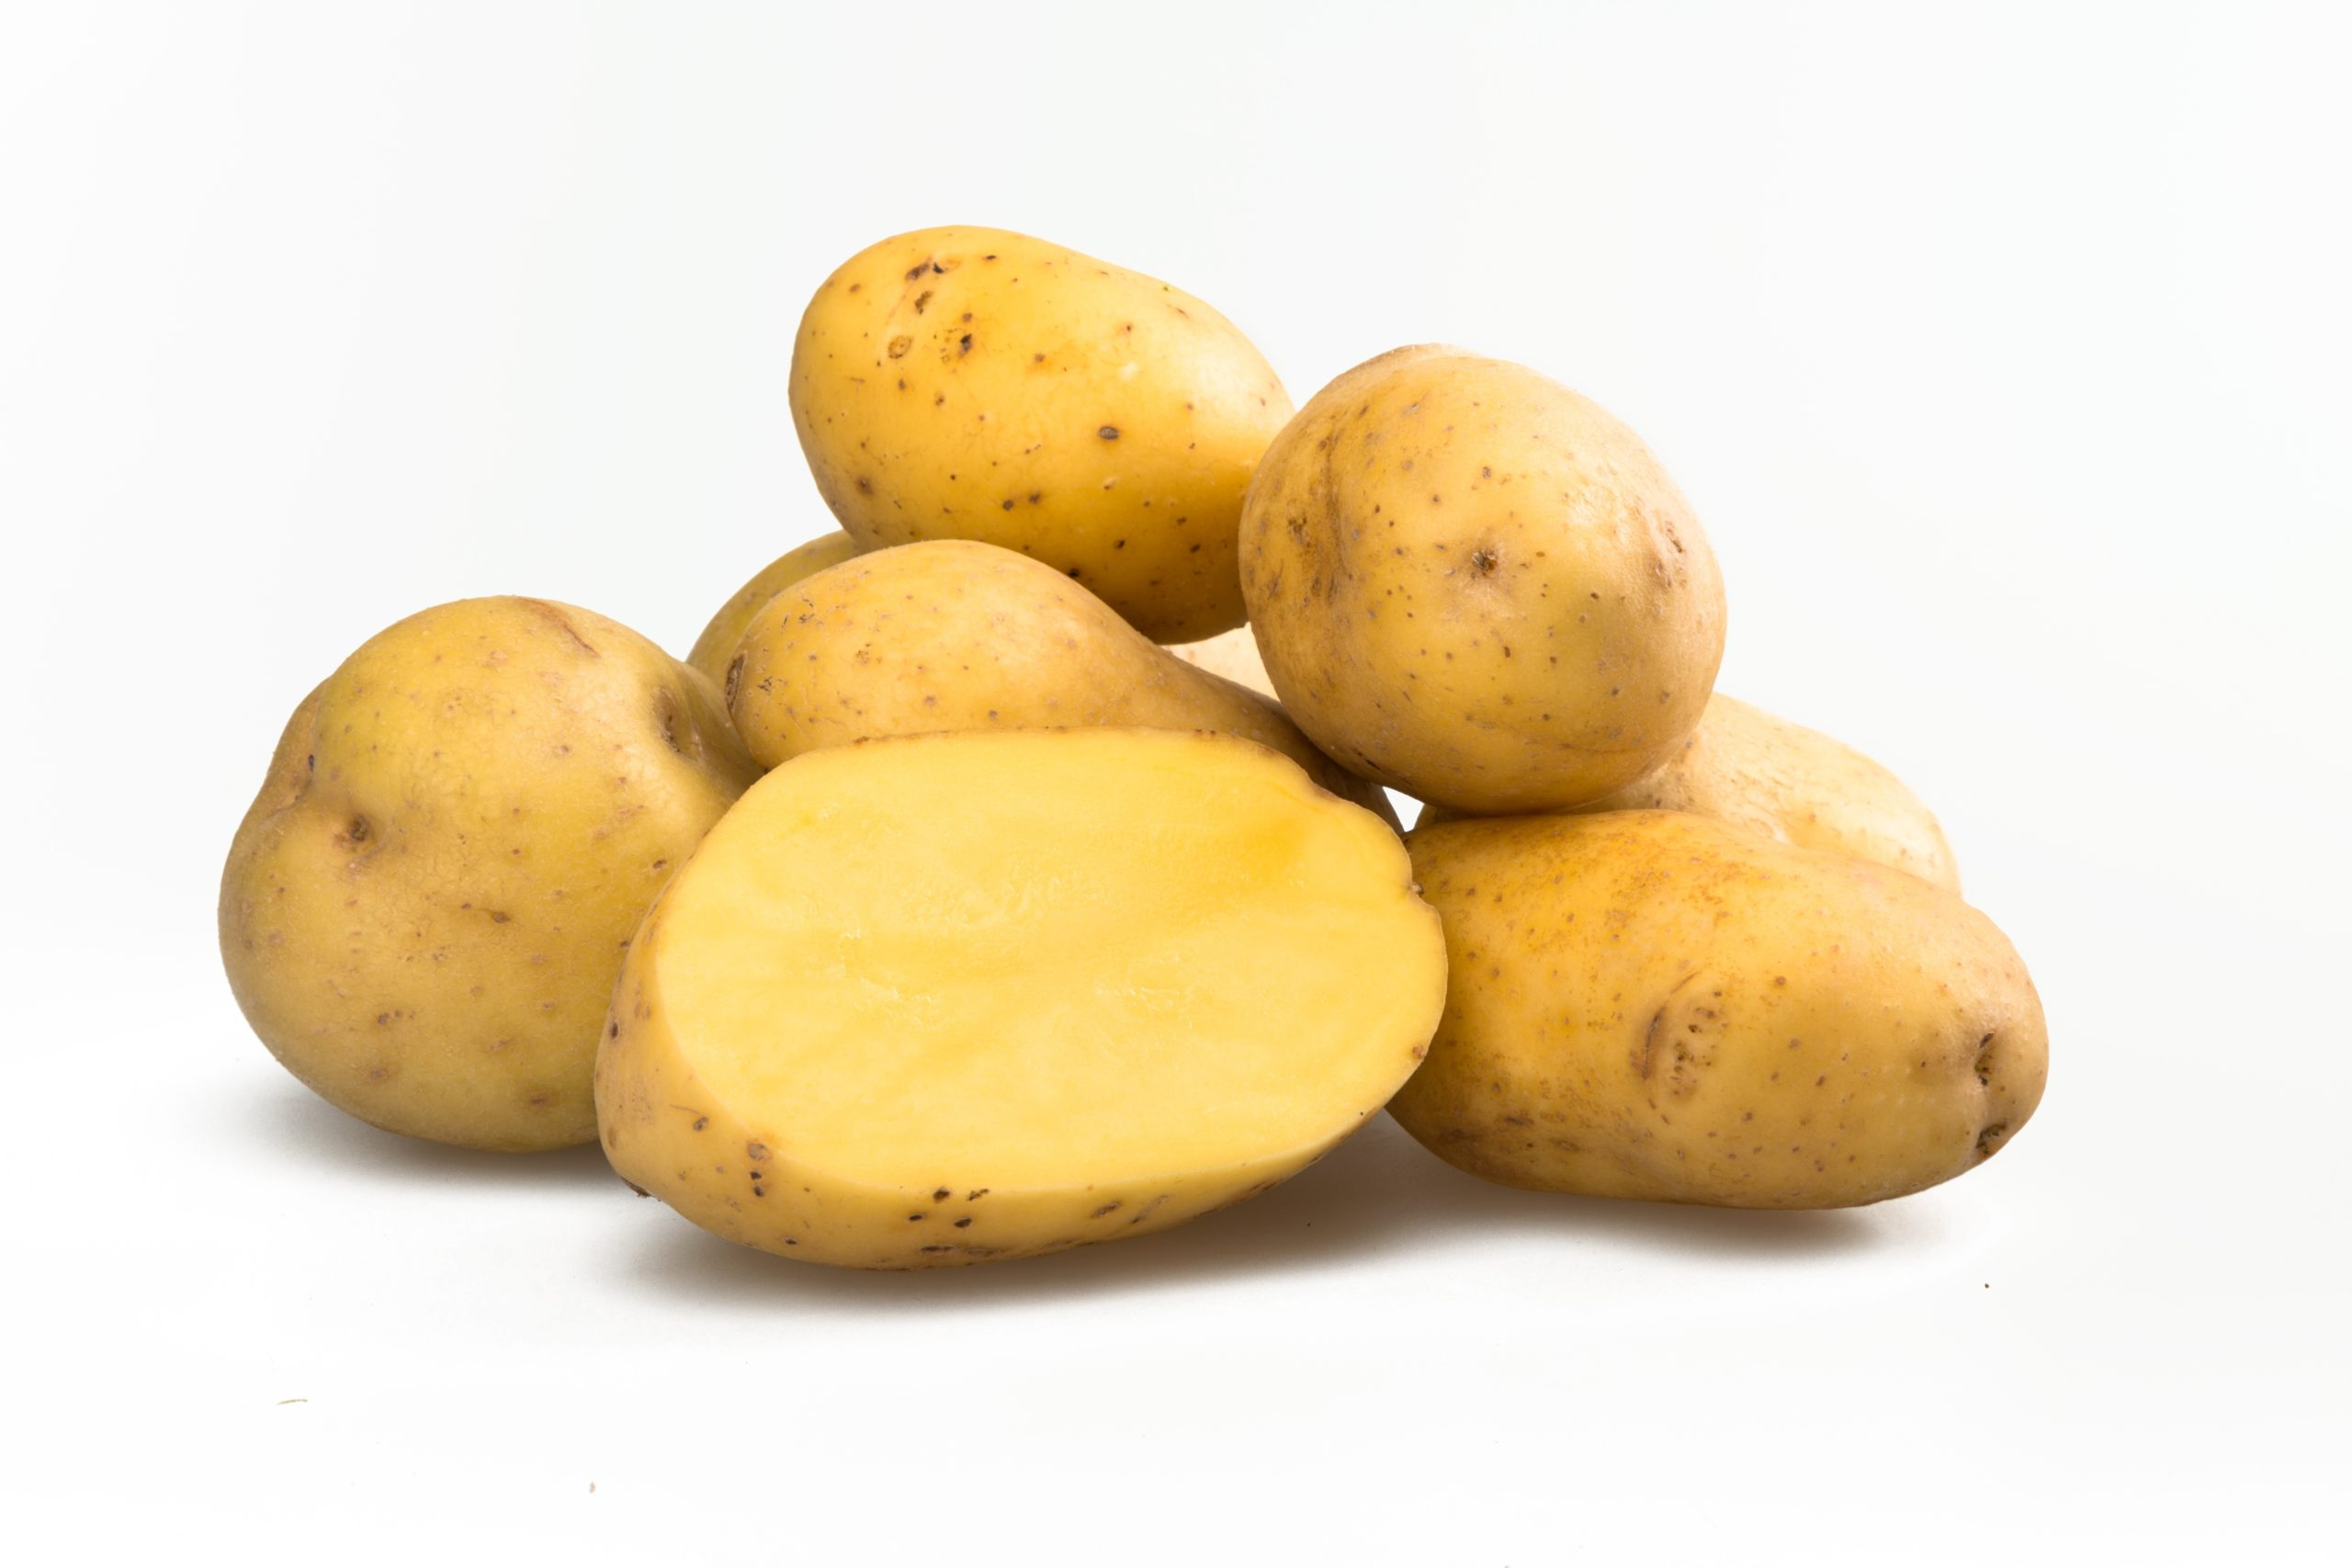 Substitutes for Yukon Gold Potatoes